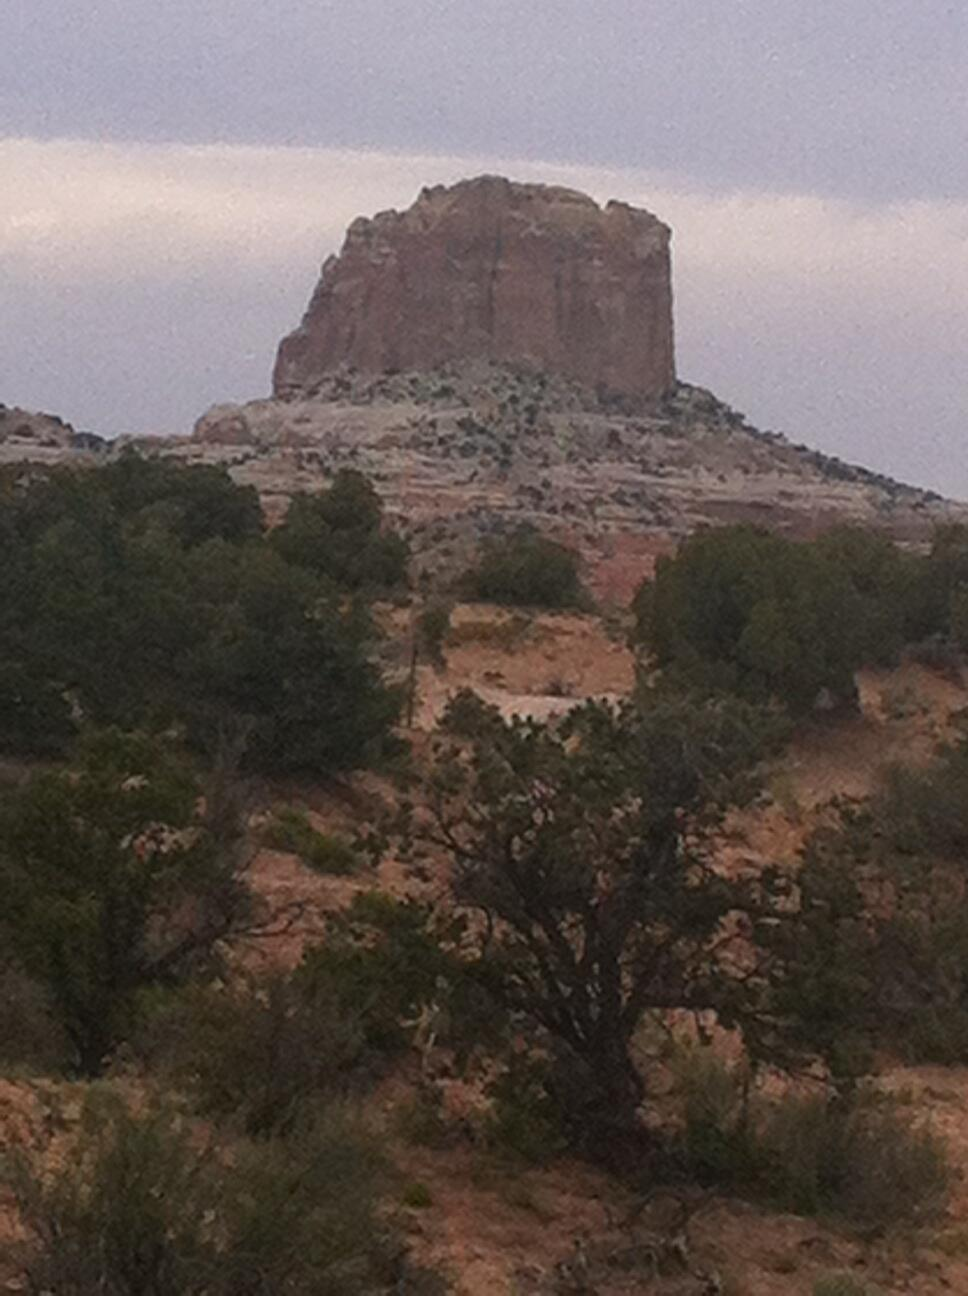 At Square Butte on Highway 98 in Northern Arizona http://t.co/vHIcP3Zz6g